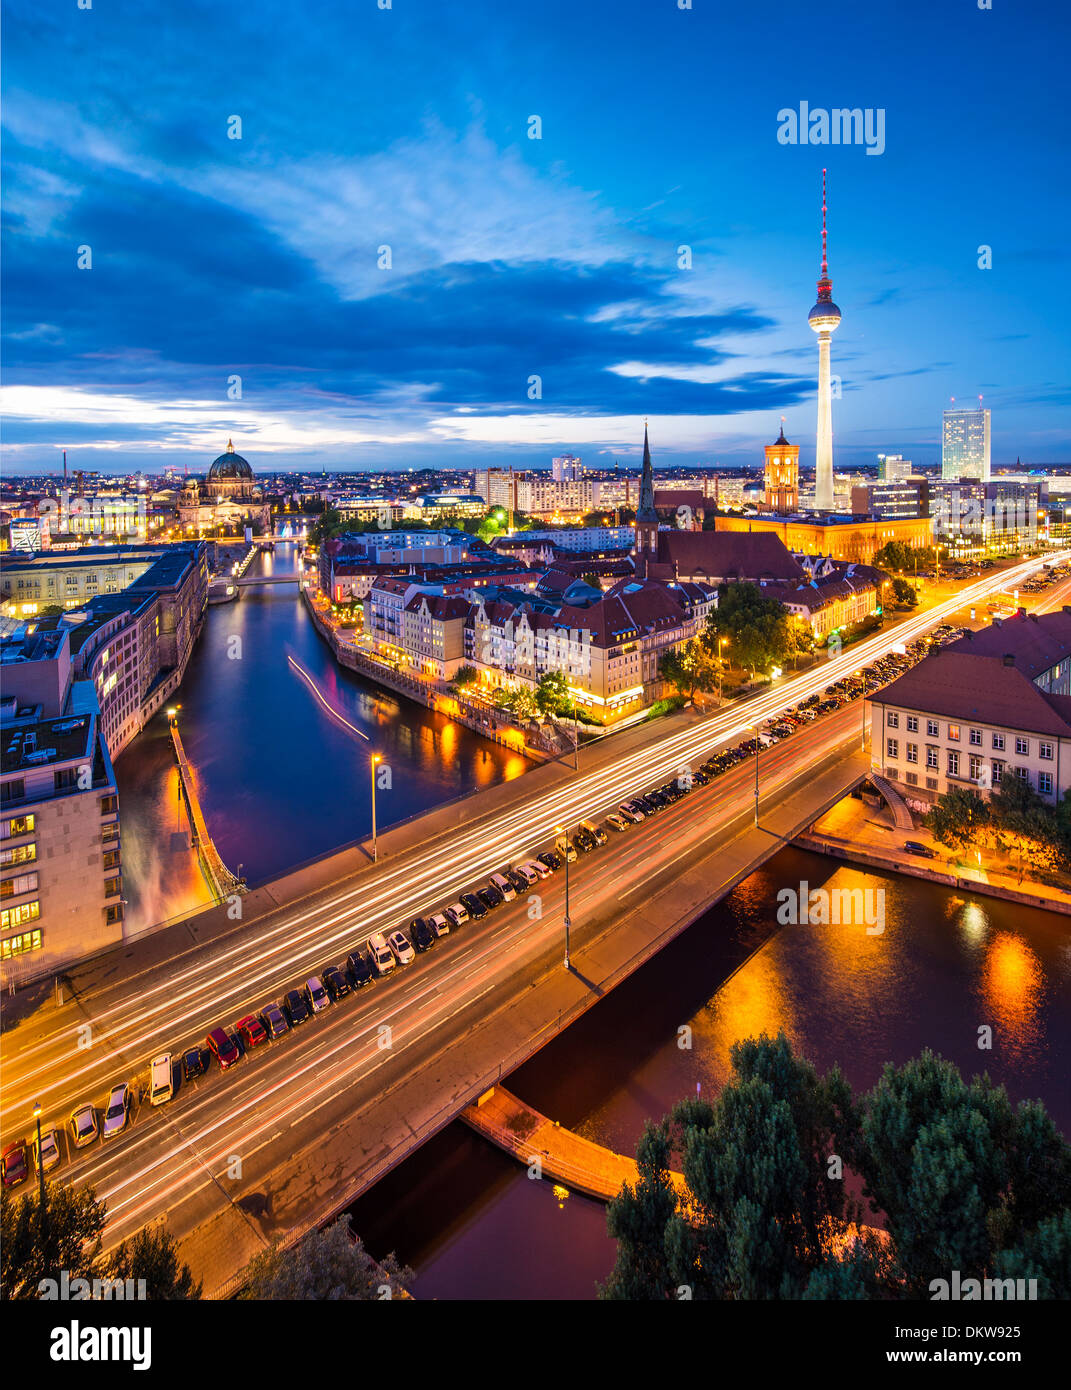 Berlin, Germany cityscape over the Spree. - Stock Image